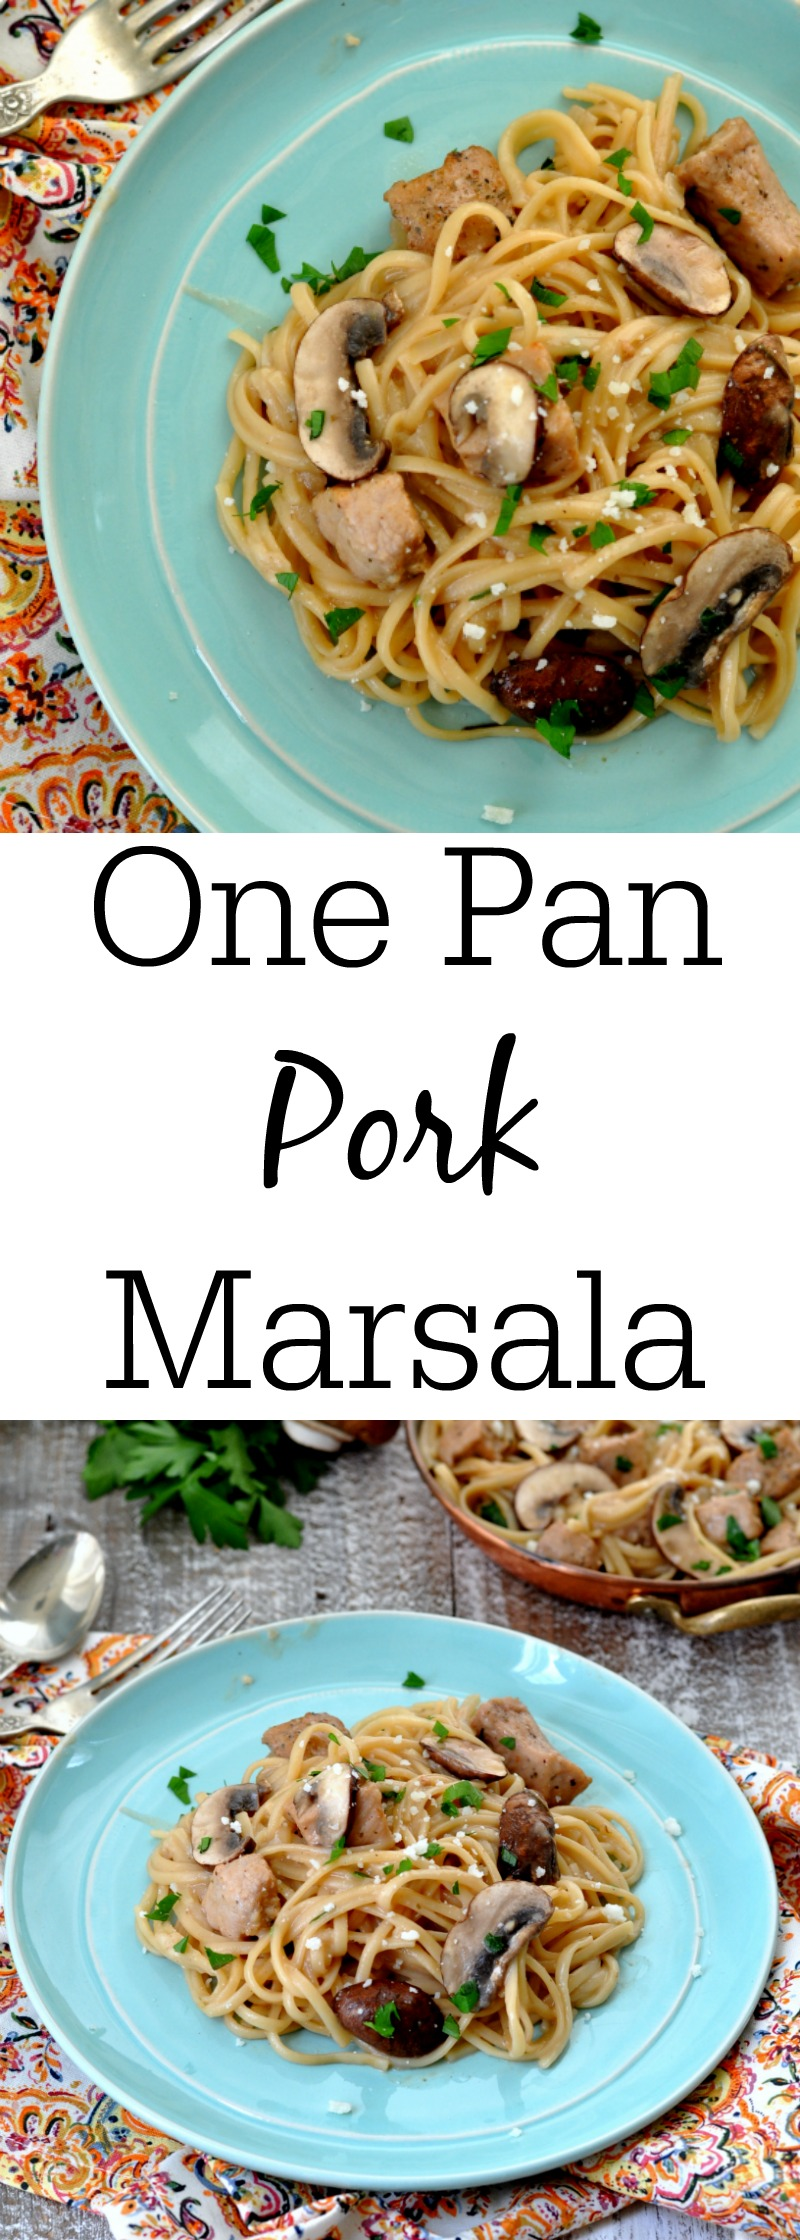 One Pan Pork Marsala